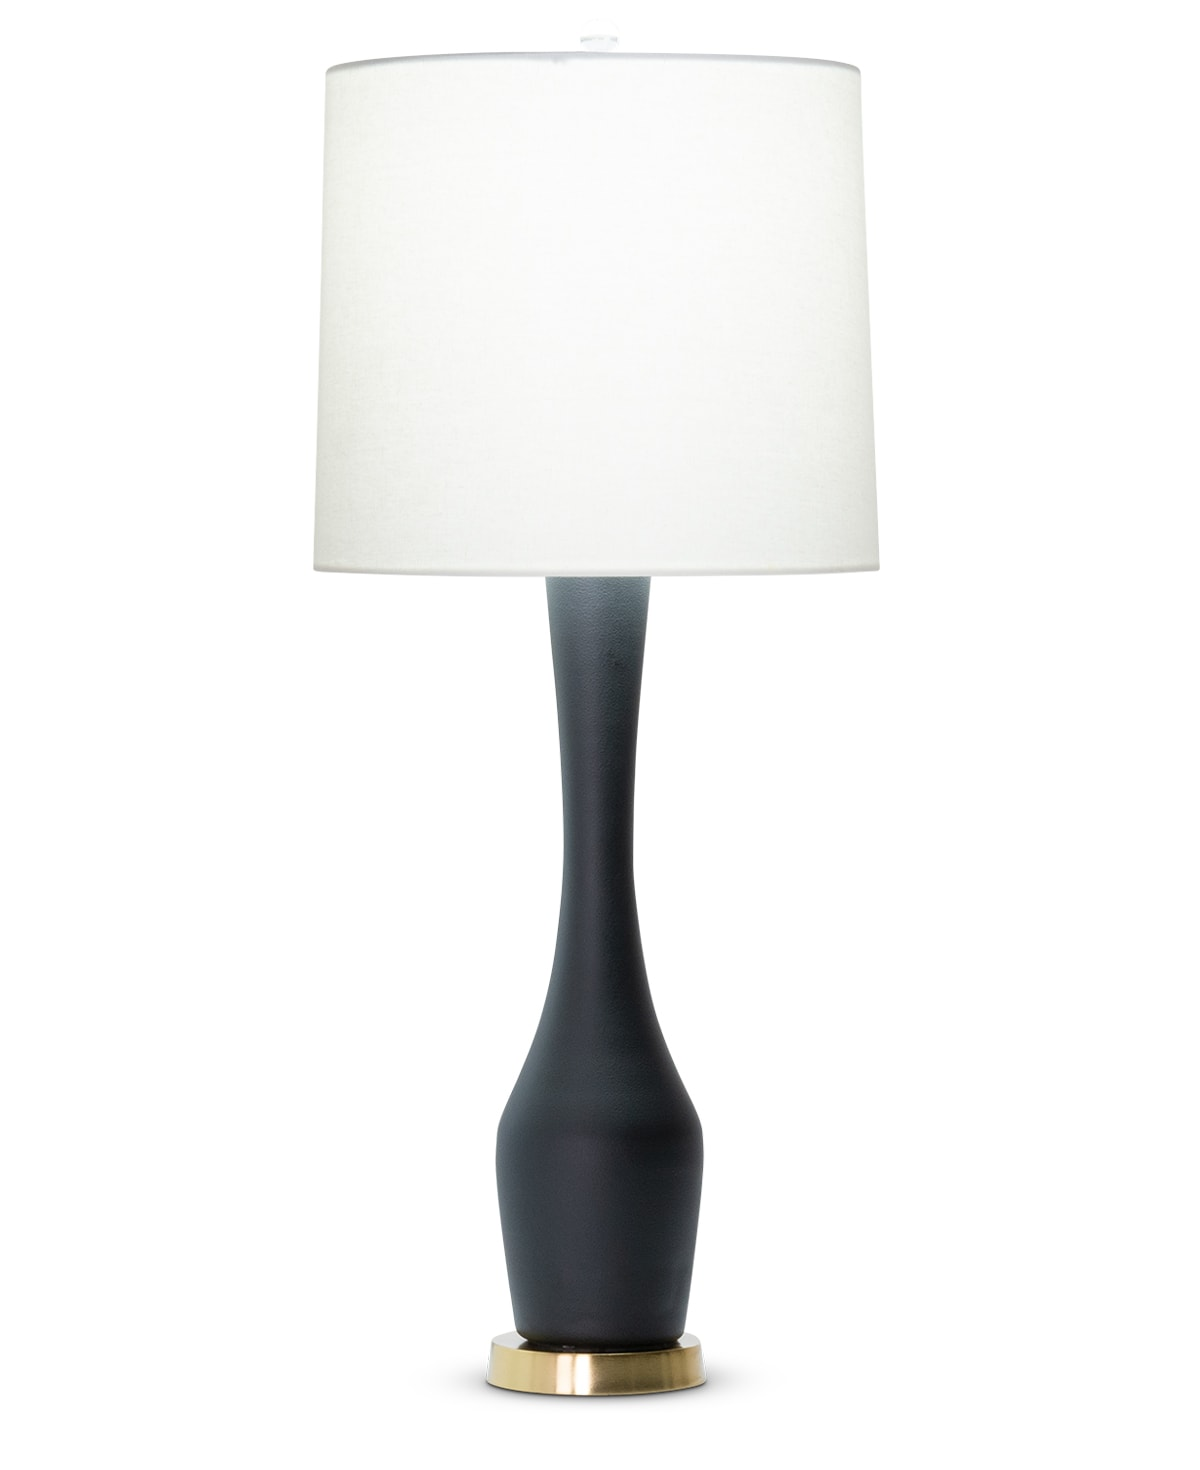 FlowDecor Durst Table Lamp in mouth-blown glass with black matte finish and metal with antique brass finish and off-white linen tapered drum shade (# 4514)